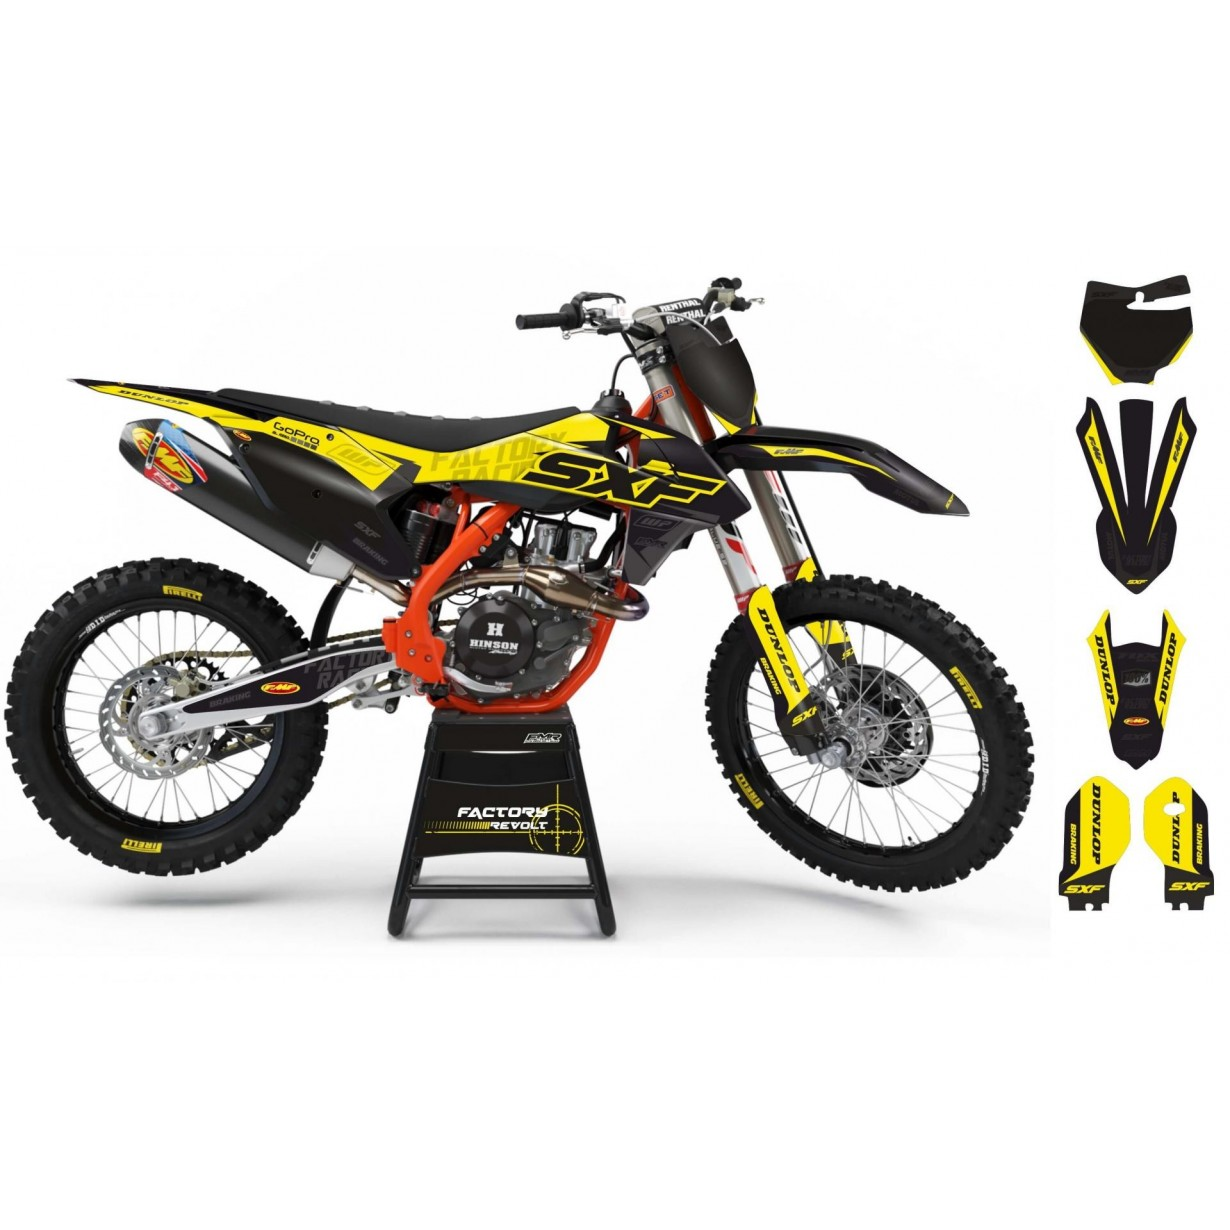 Kit déco Perso KTM Factory Revolt A26C6 black/yellow